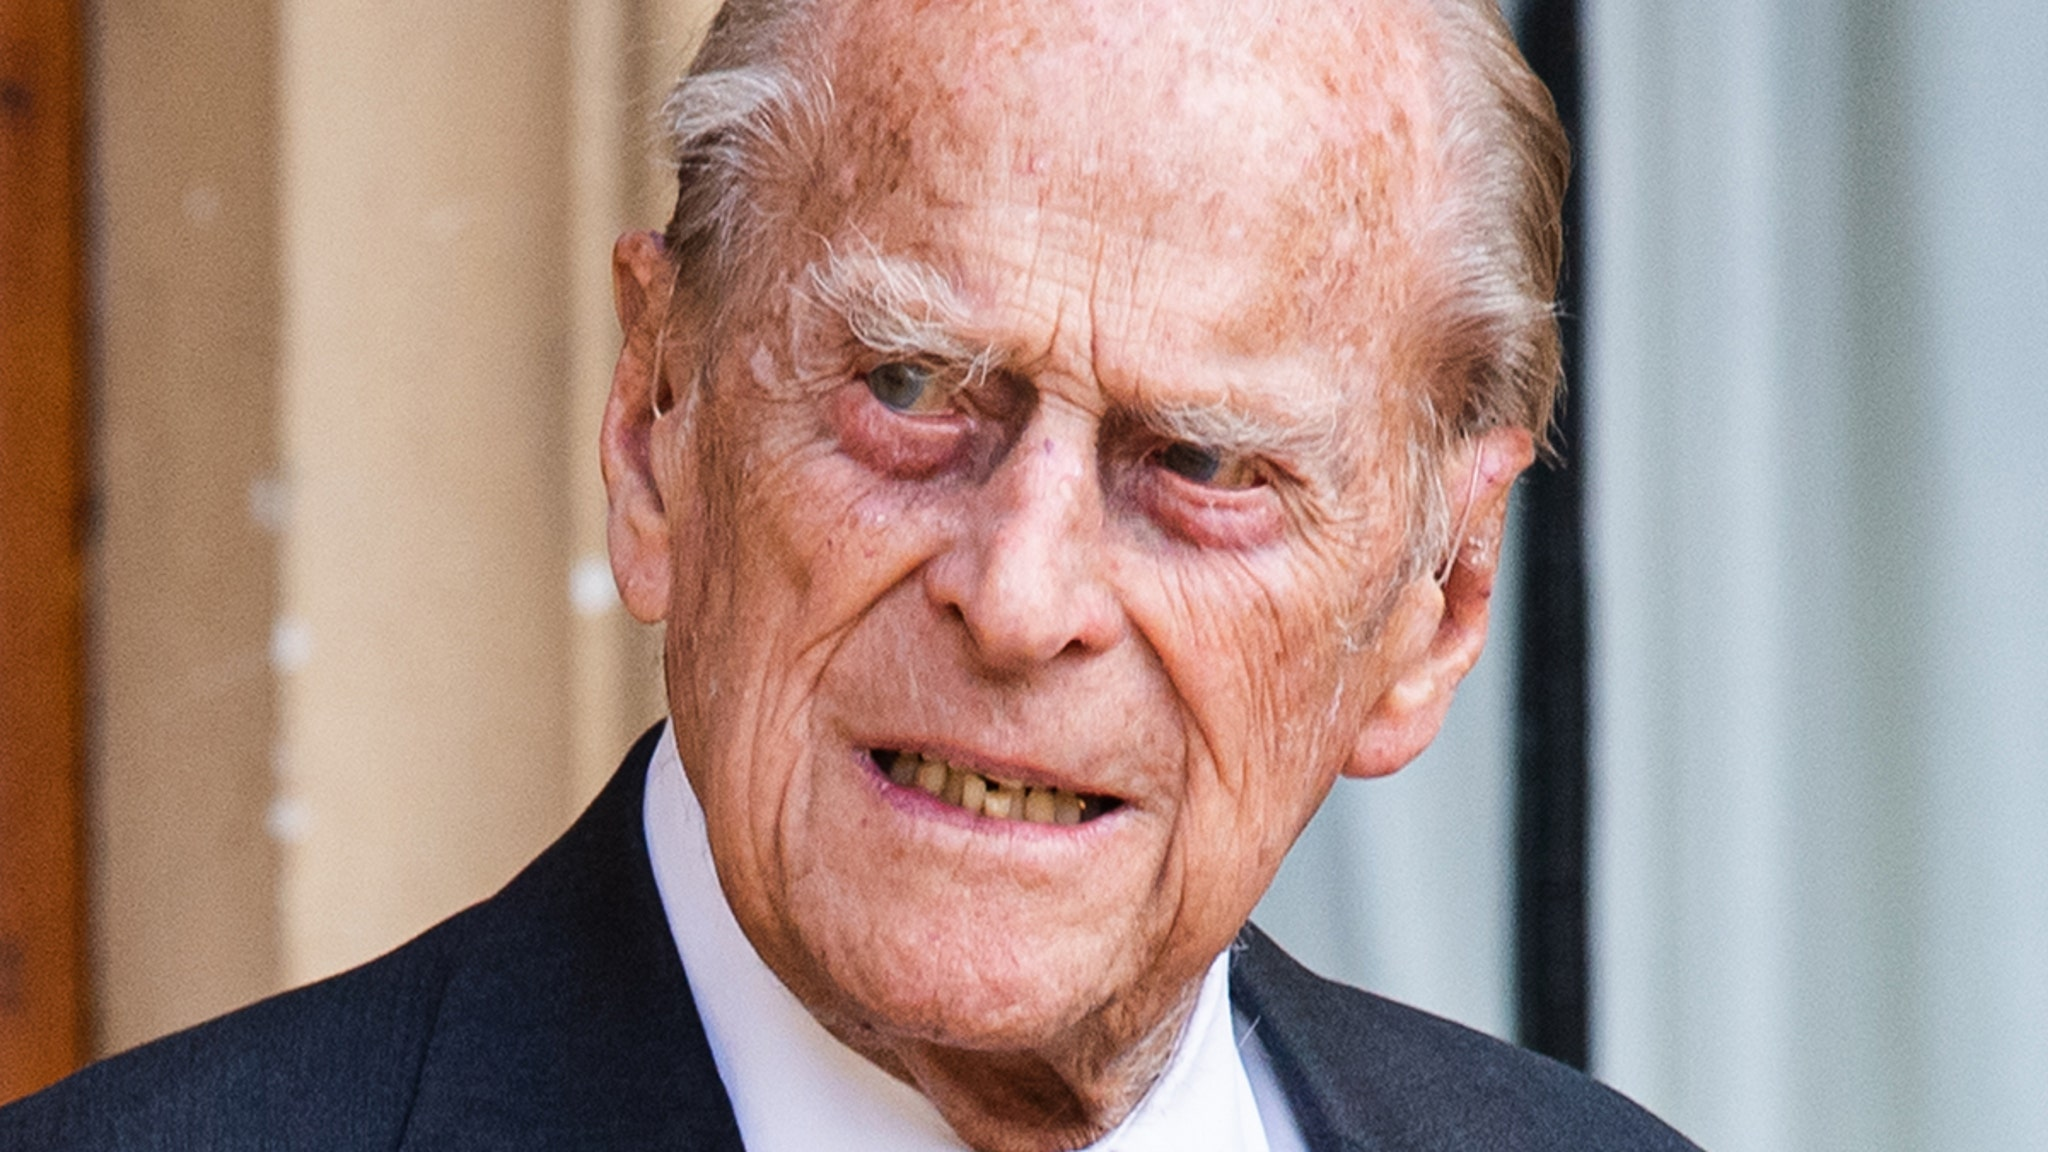 Prince Philip Underwent Heart Surgery ... More Serious Than Palace Admitted